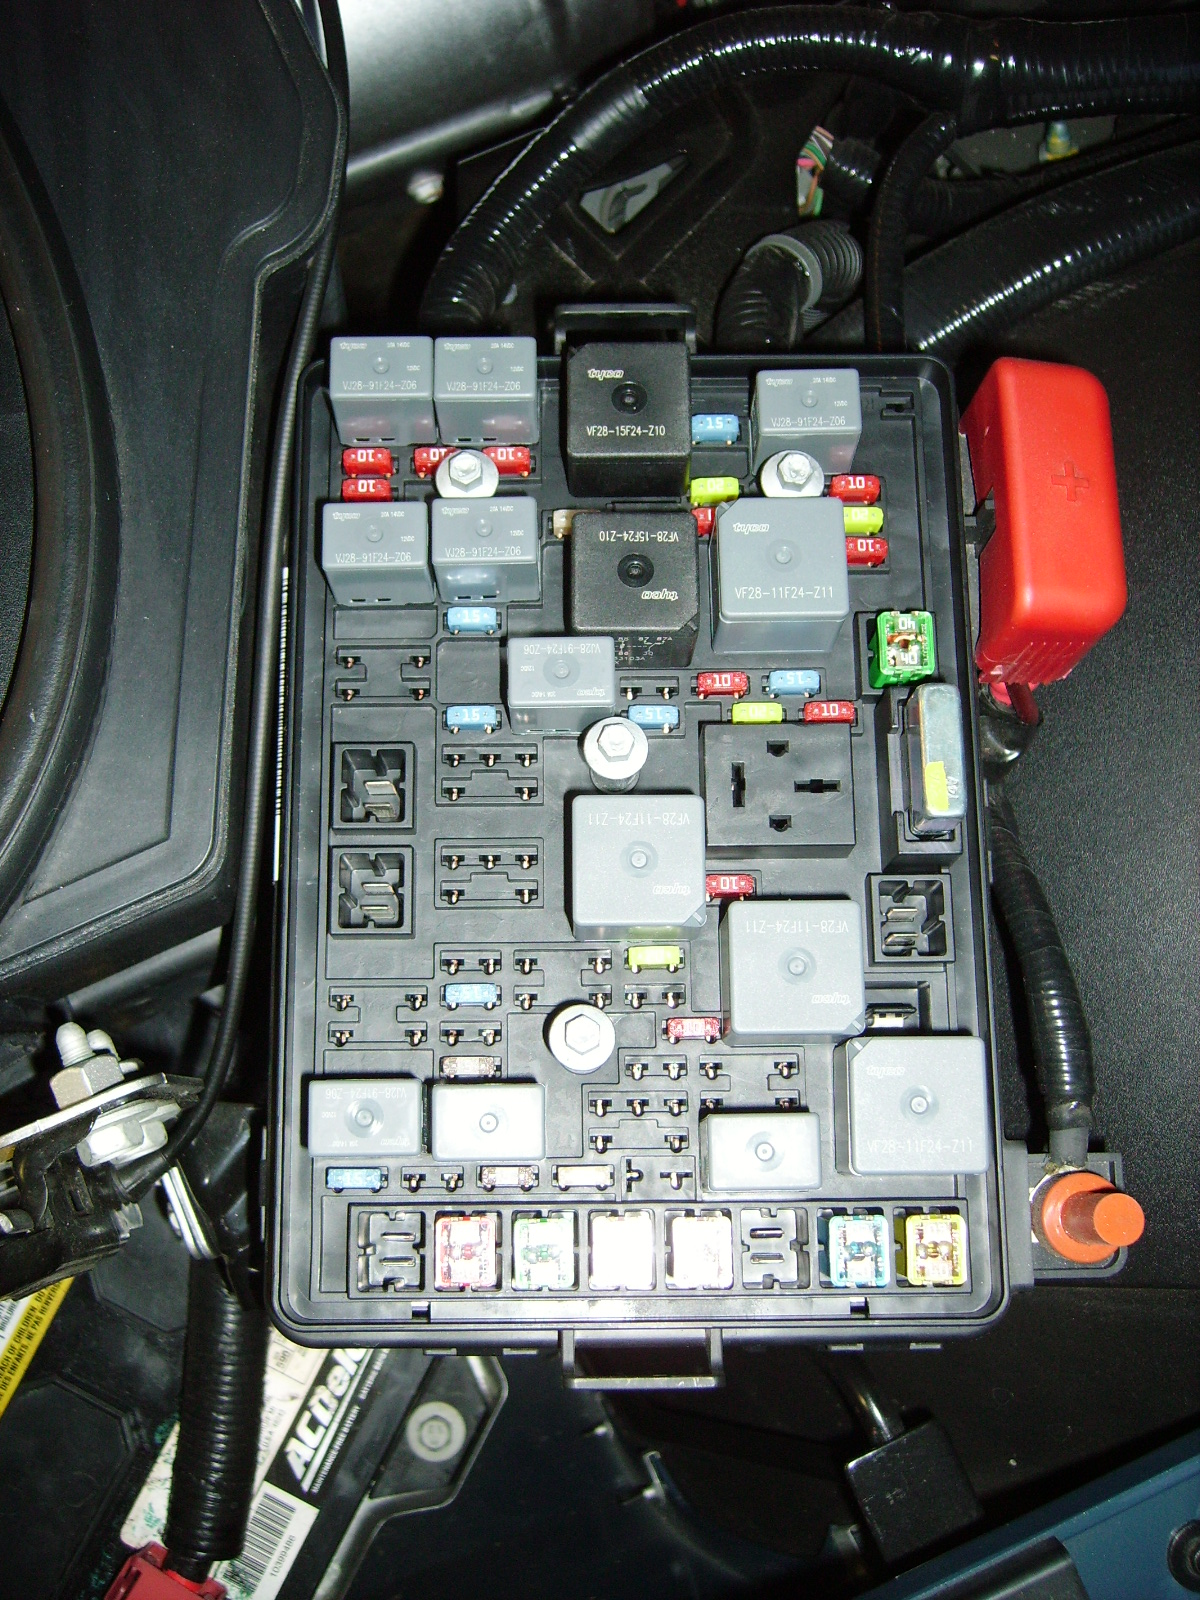 40354d1305120997 reverse light out fuse box under hood reverse light out? saturn sky forums saturn sky forum  at crackthecode.co